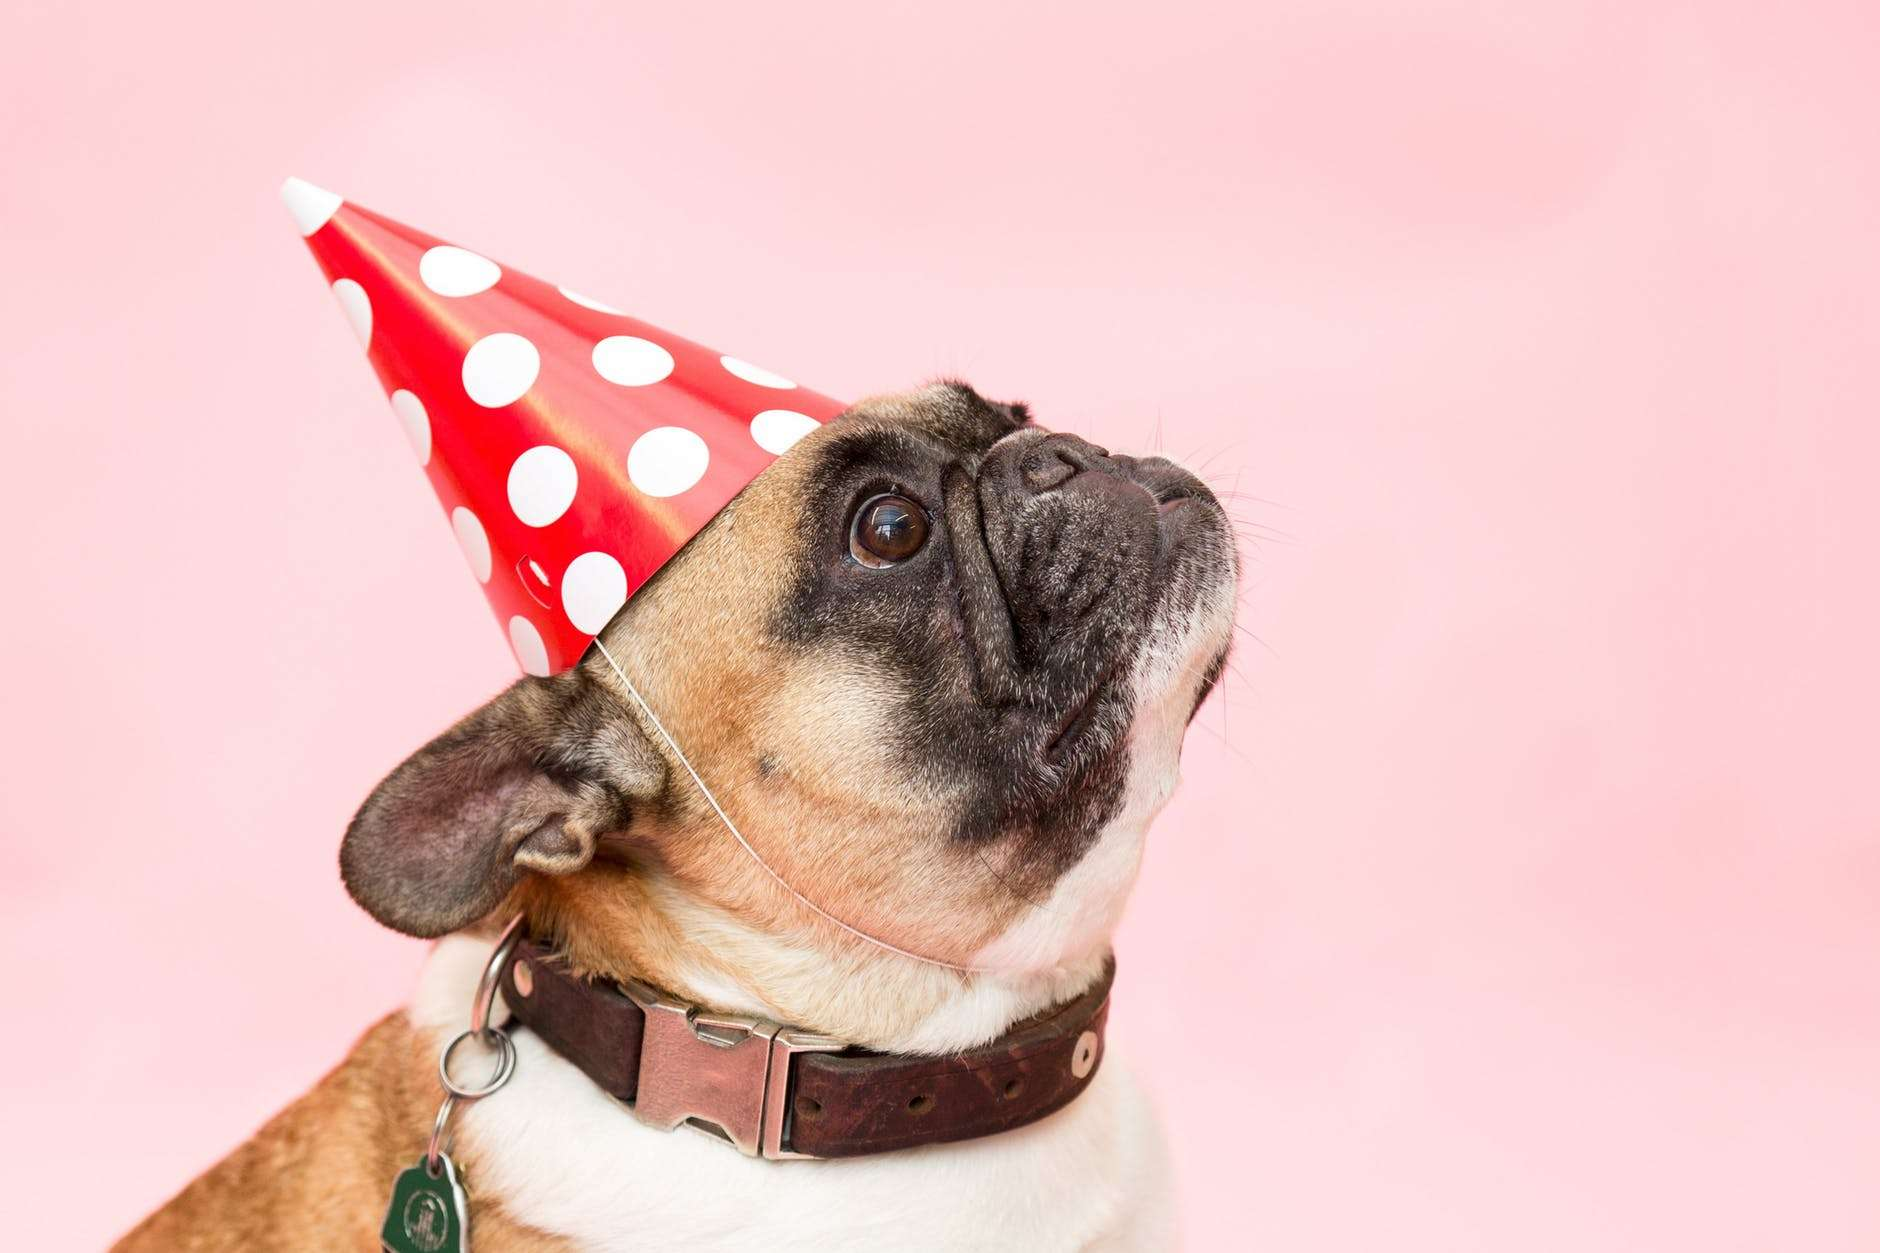 8 Dog Birthday Ideas to Show Your Love and Appreciation